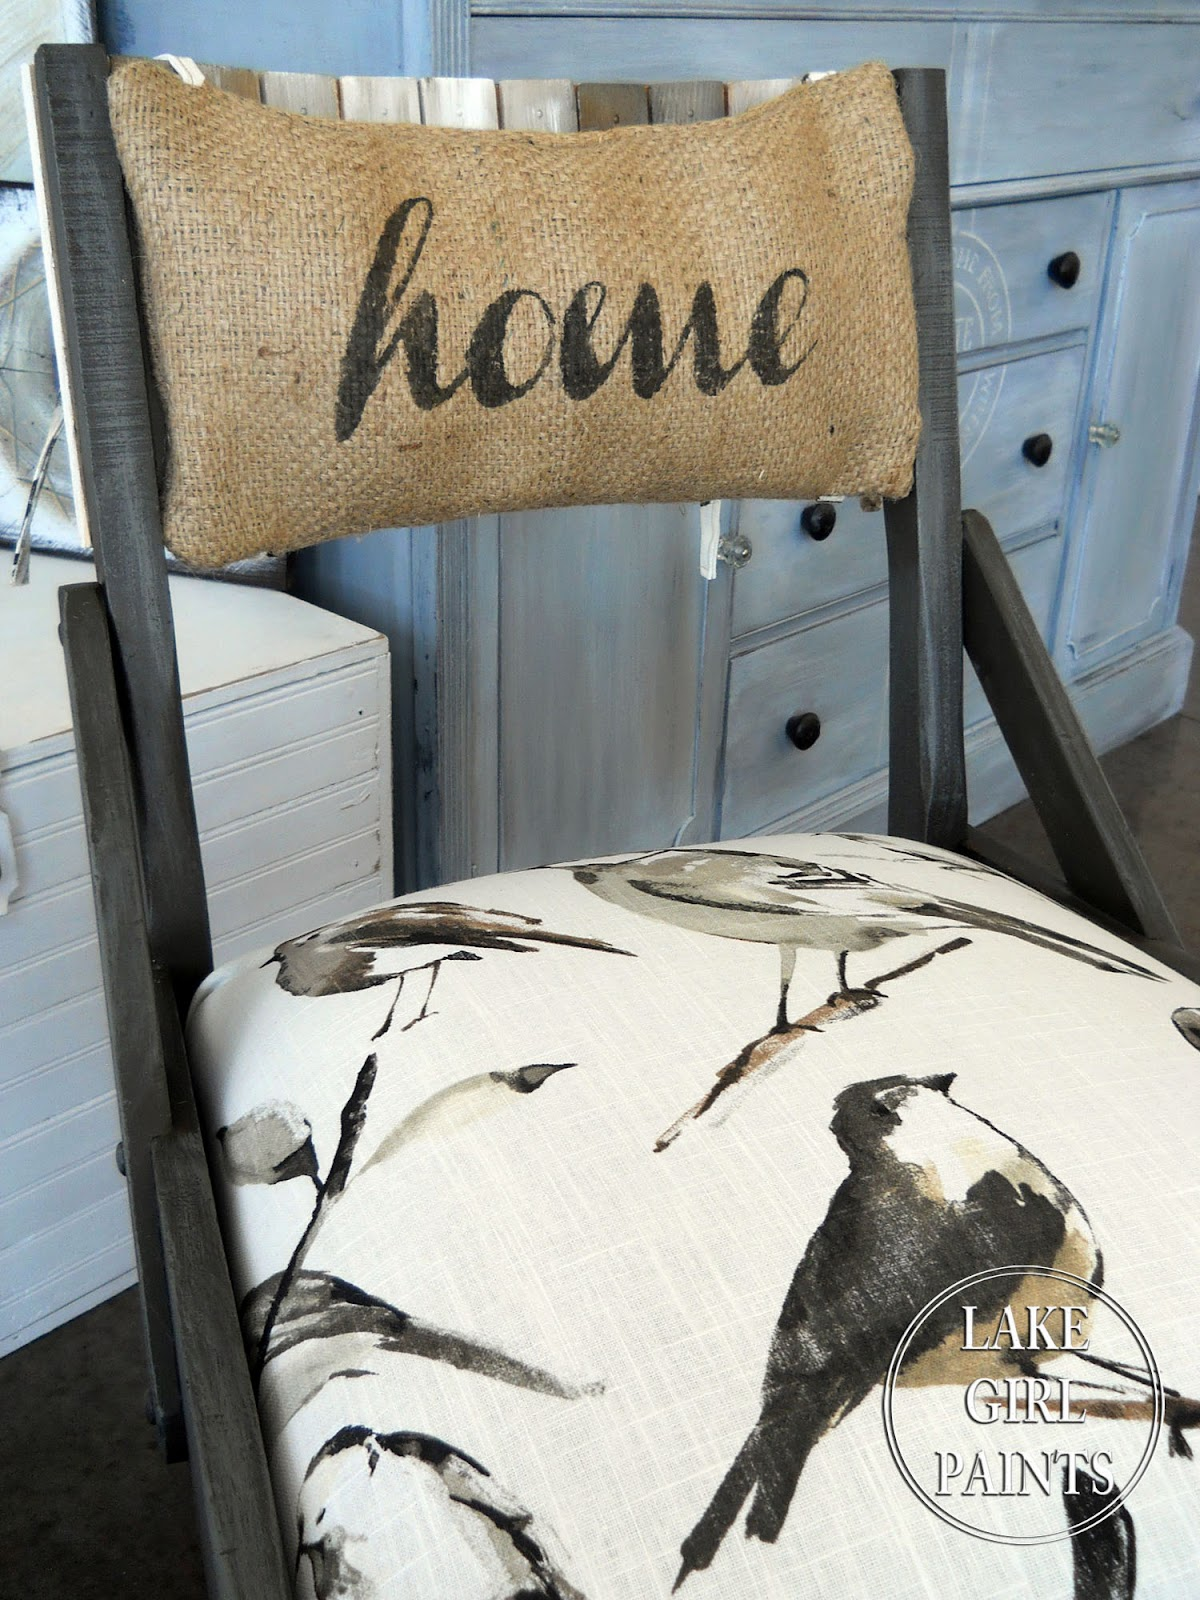 Lake Girl Paints Old Chairs Spring to Life with Birdwatcher Fabric